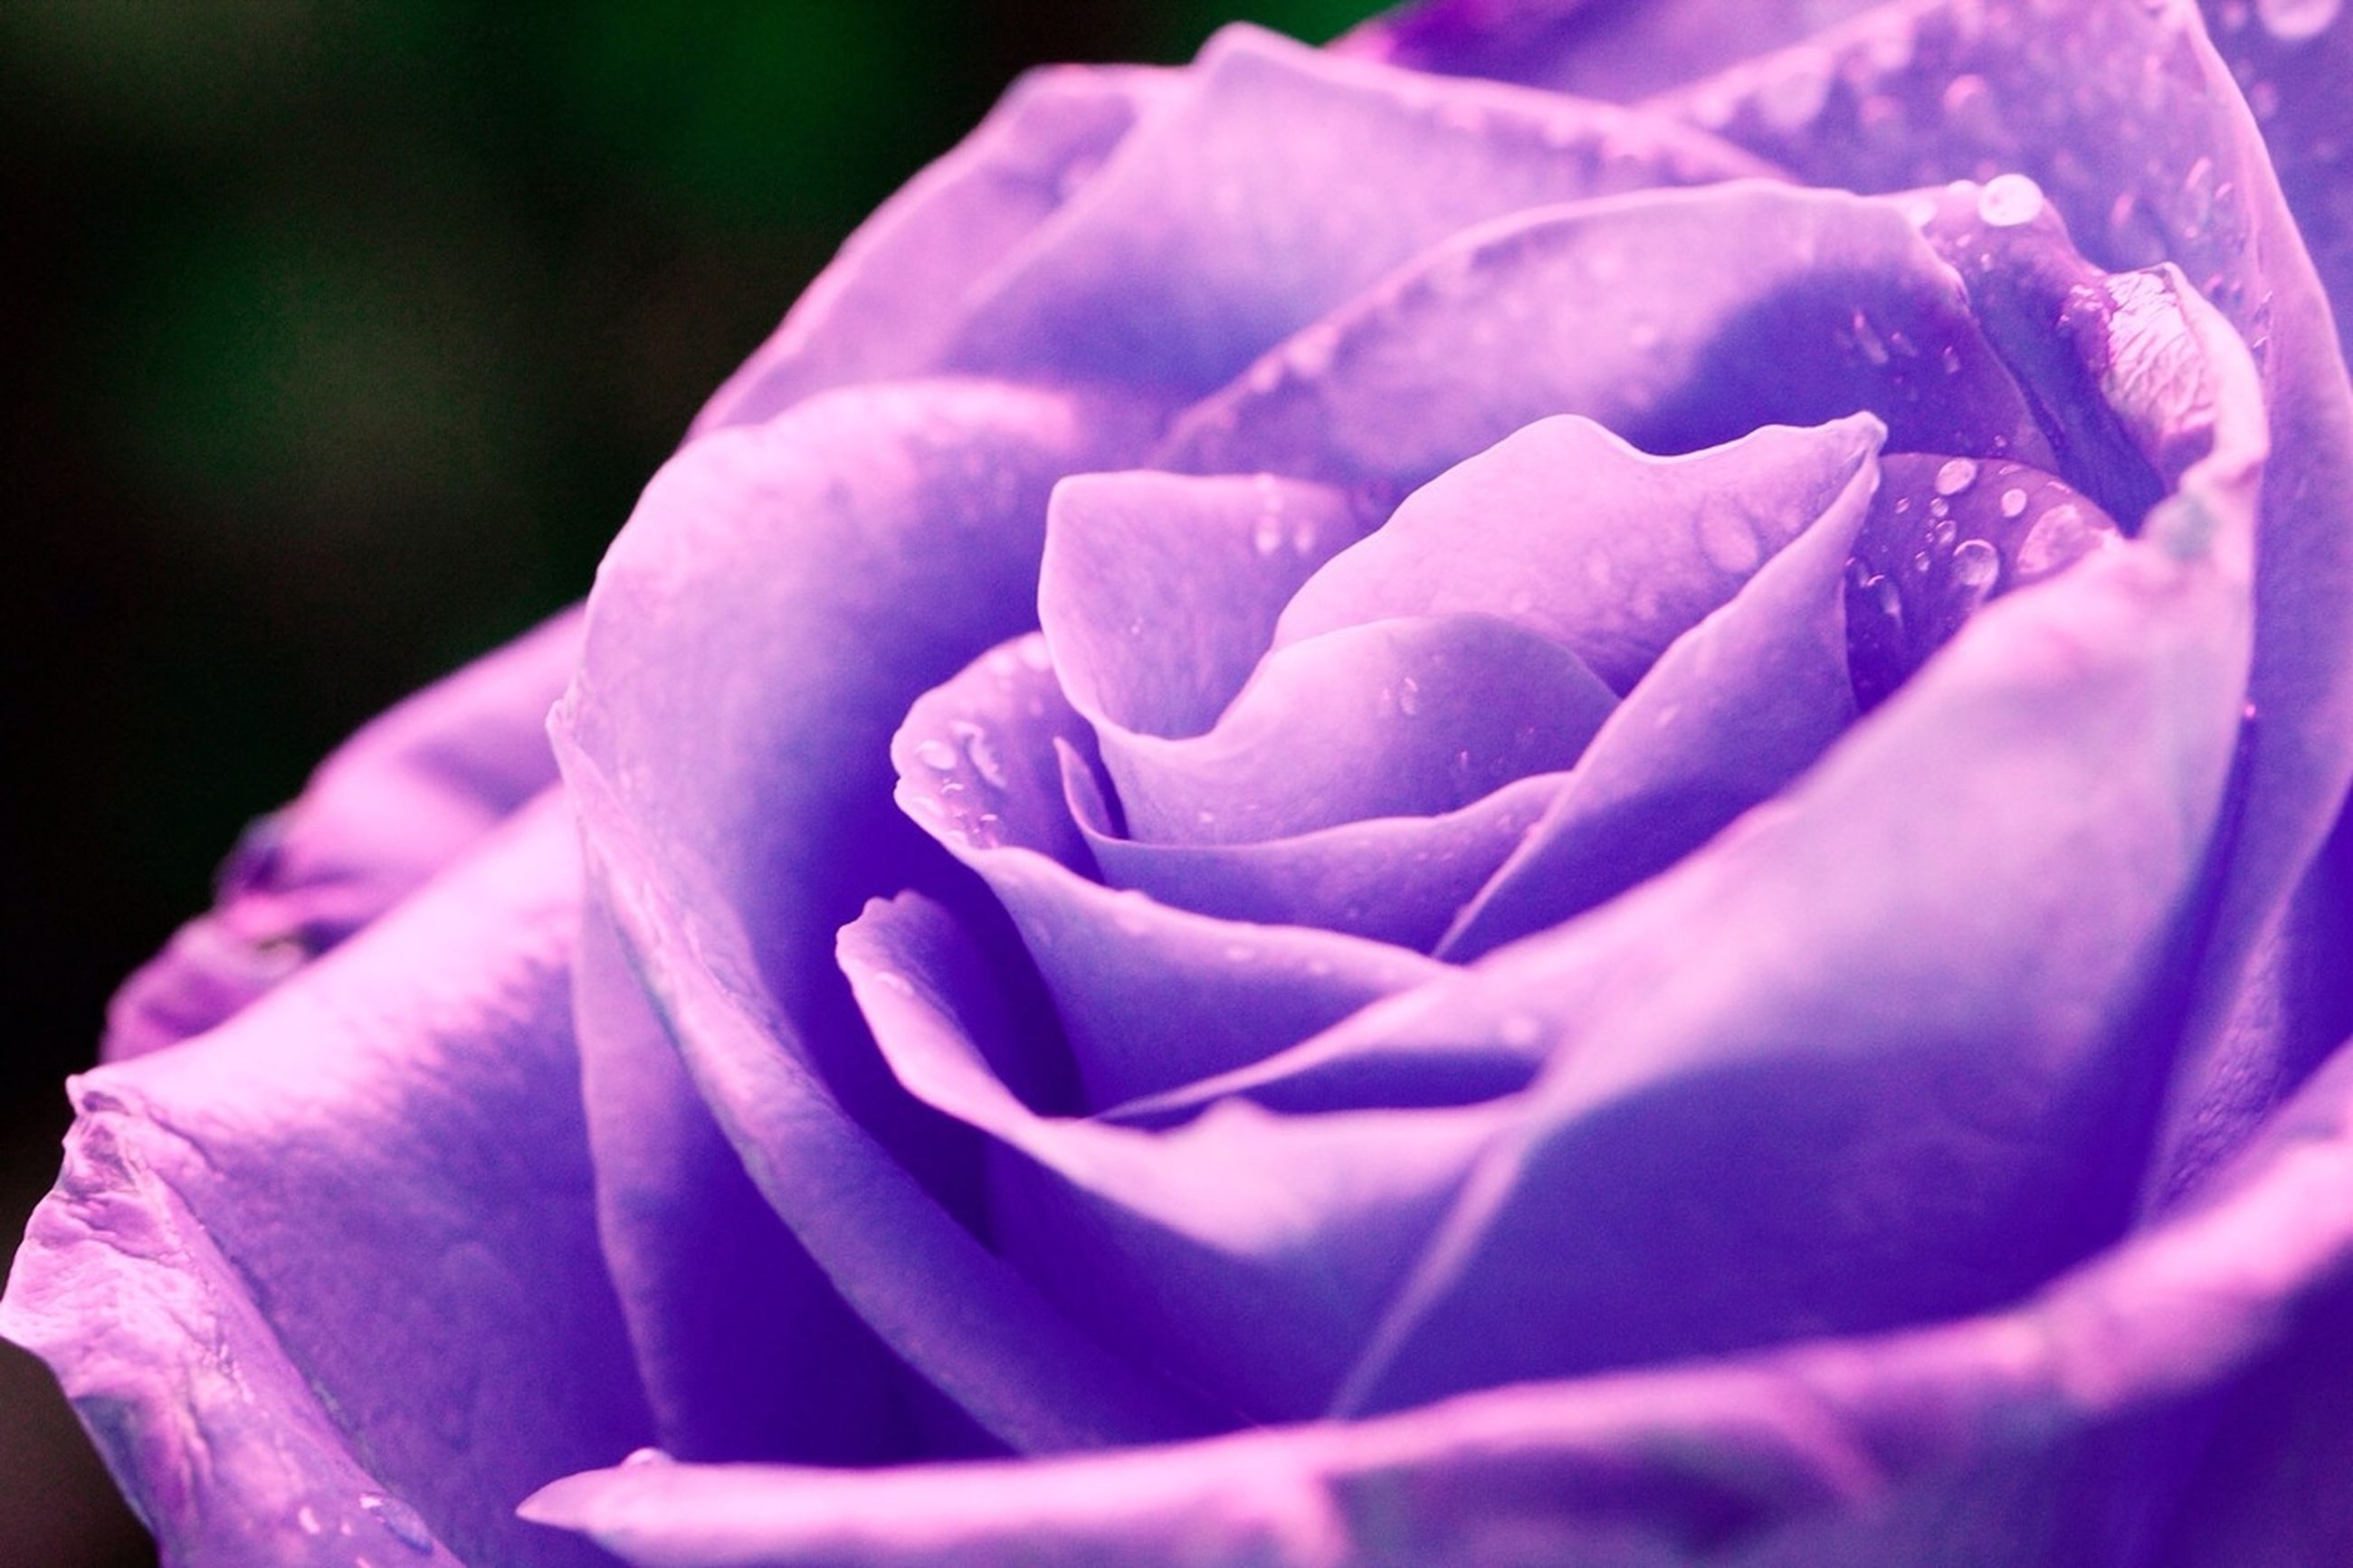 petal, flower, flower head, fragility, freshness, single flower, close-up, beauty in nature, focus on foreground, growth, rose - flower, nature, blooming, purple, selective focus, pink color, plant, in bloom, outdoors, softness